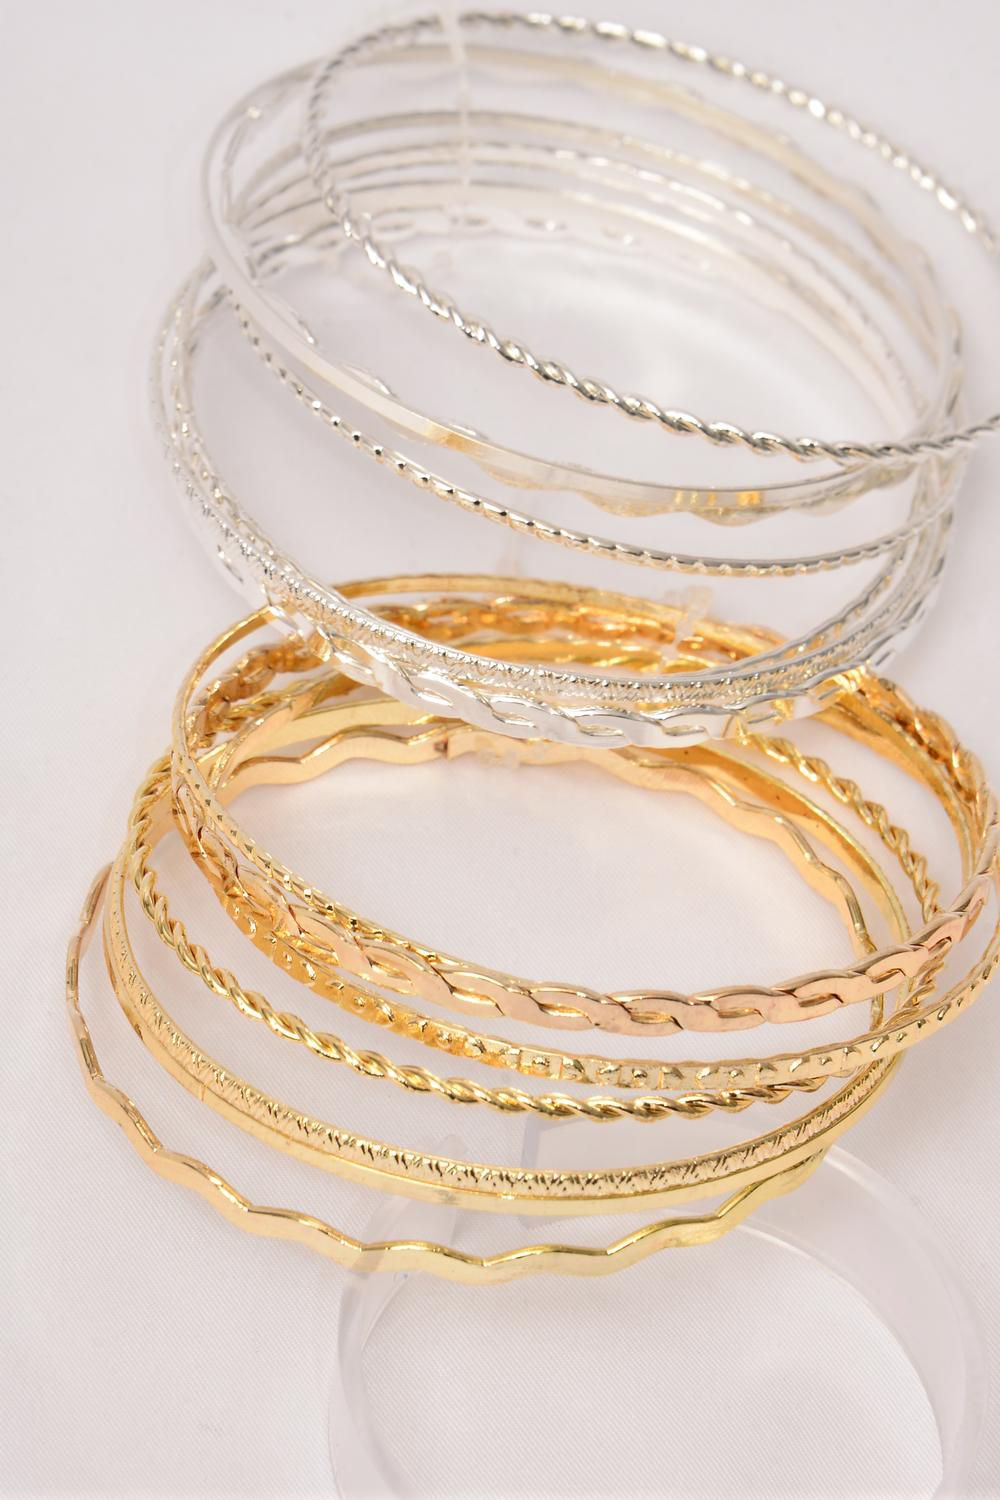 "Bangles 7 pcs Metal Asst Patterns/DZ Size-2.75"" Dia Wide,6 Gold & 6 Silver Mix,Hang tag & Opp bag & UPC Code,each card has 7pcs Bangles,12card=Dozen -"